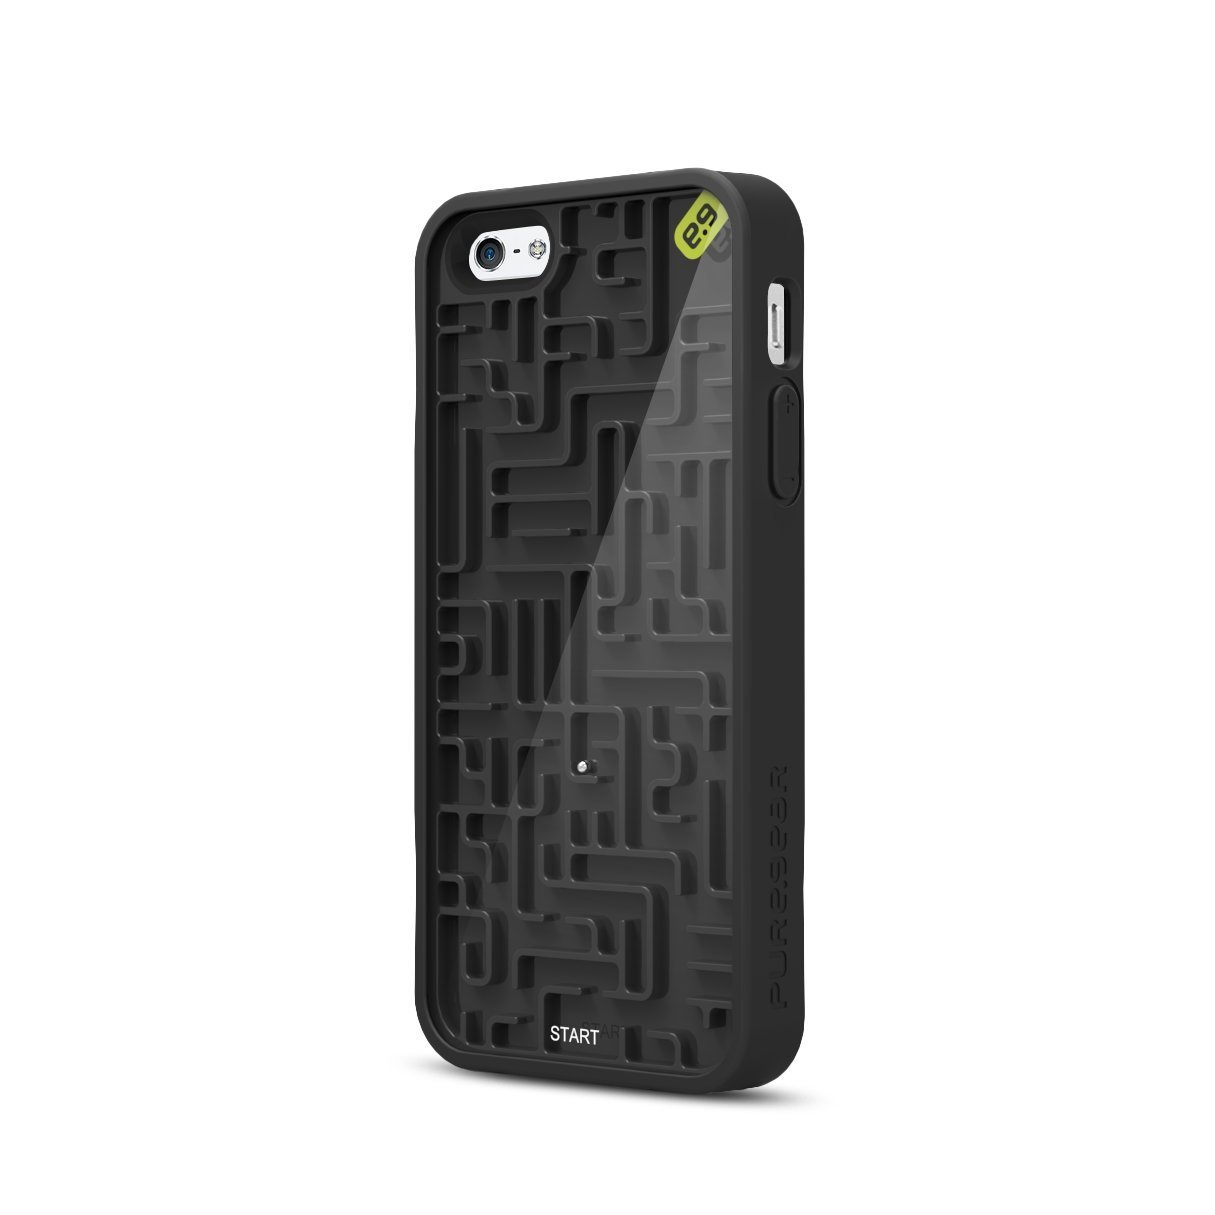 Amazon.com: PureGear Gamer Case for Apple iPhone 5 - A-Maze-Ing - Retail Packaging - Black: Cell Phones & Accessories